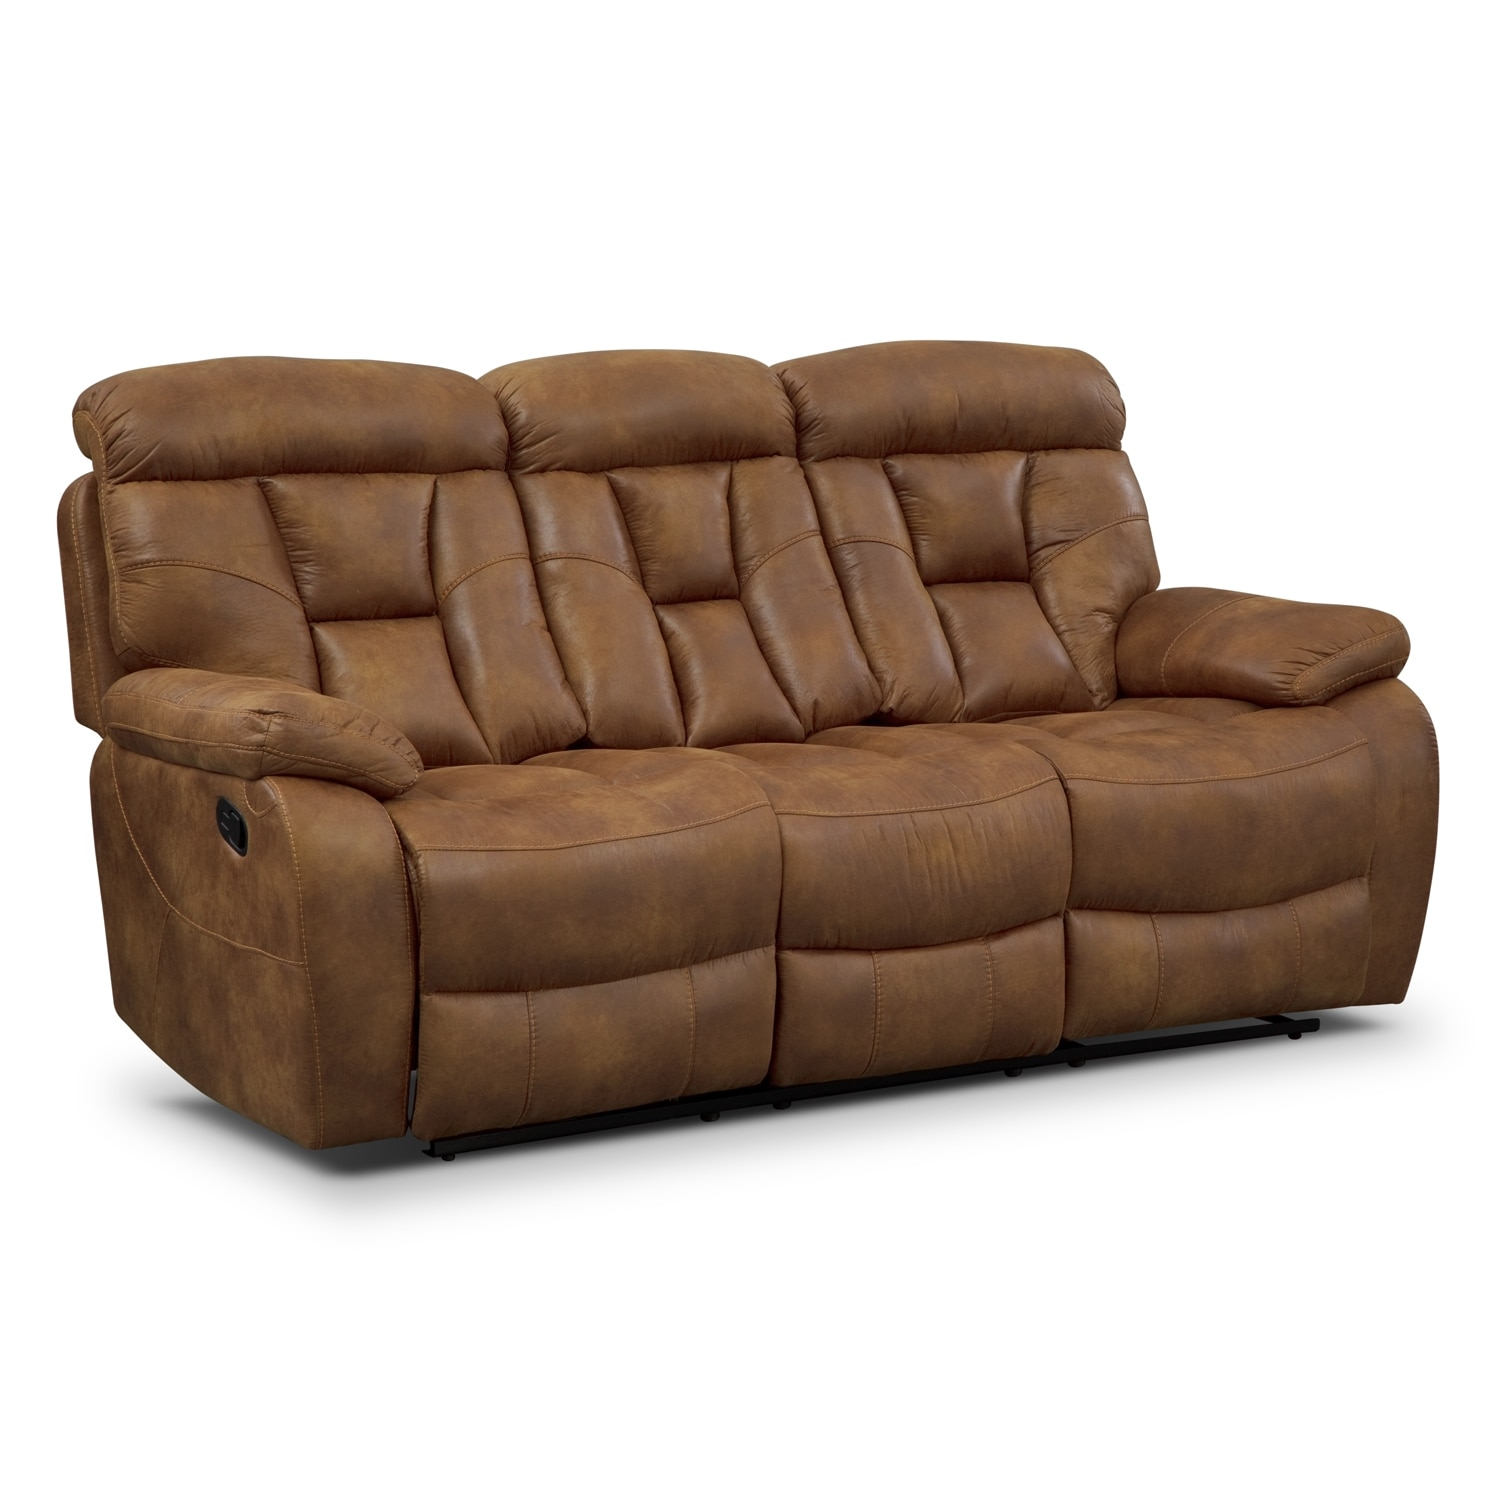 Dakota reclining sofa almond value city furniture Sofa loveseat